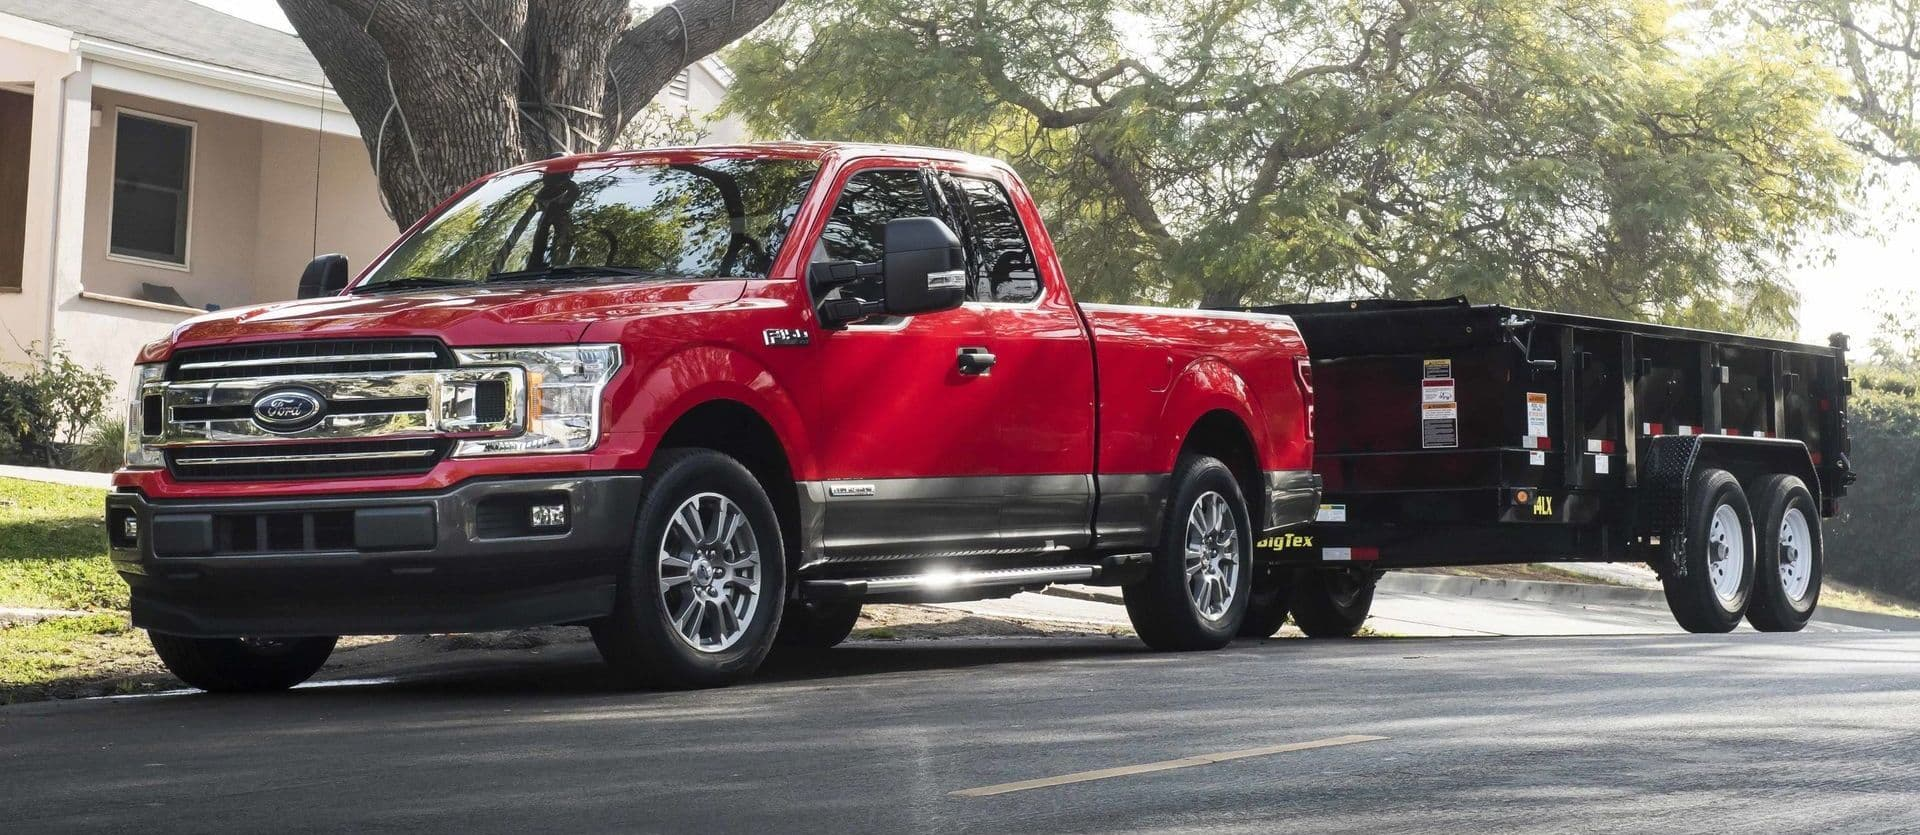 llega el di sel a las ford f 150 cu les son las. Black Bedroom Furniture Sets. Home Design Ideas